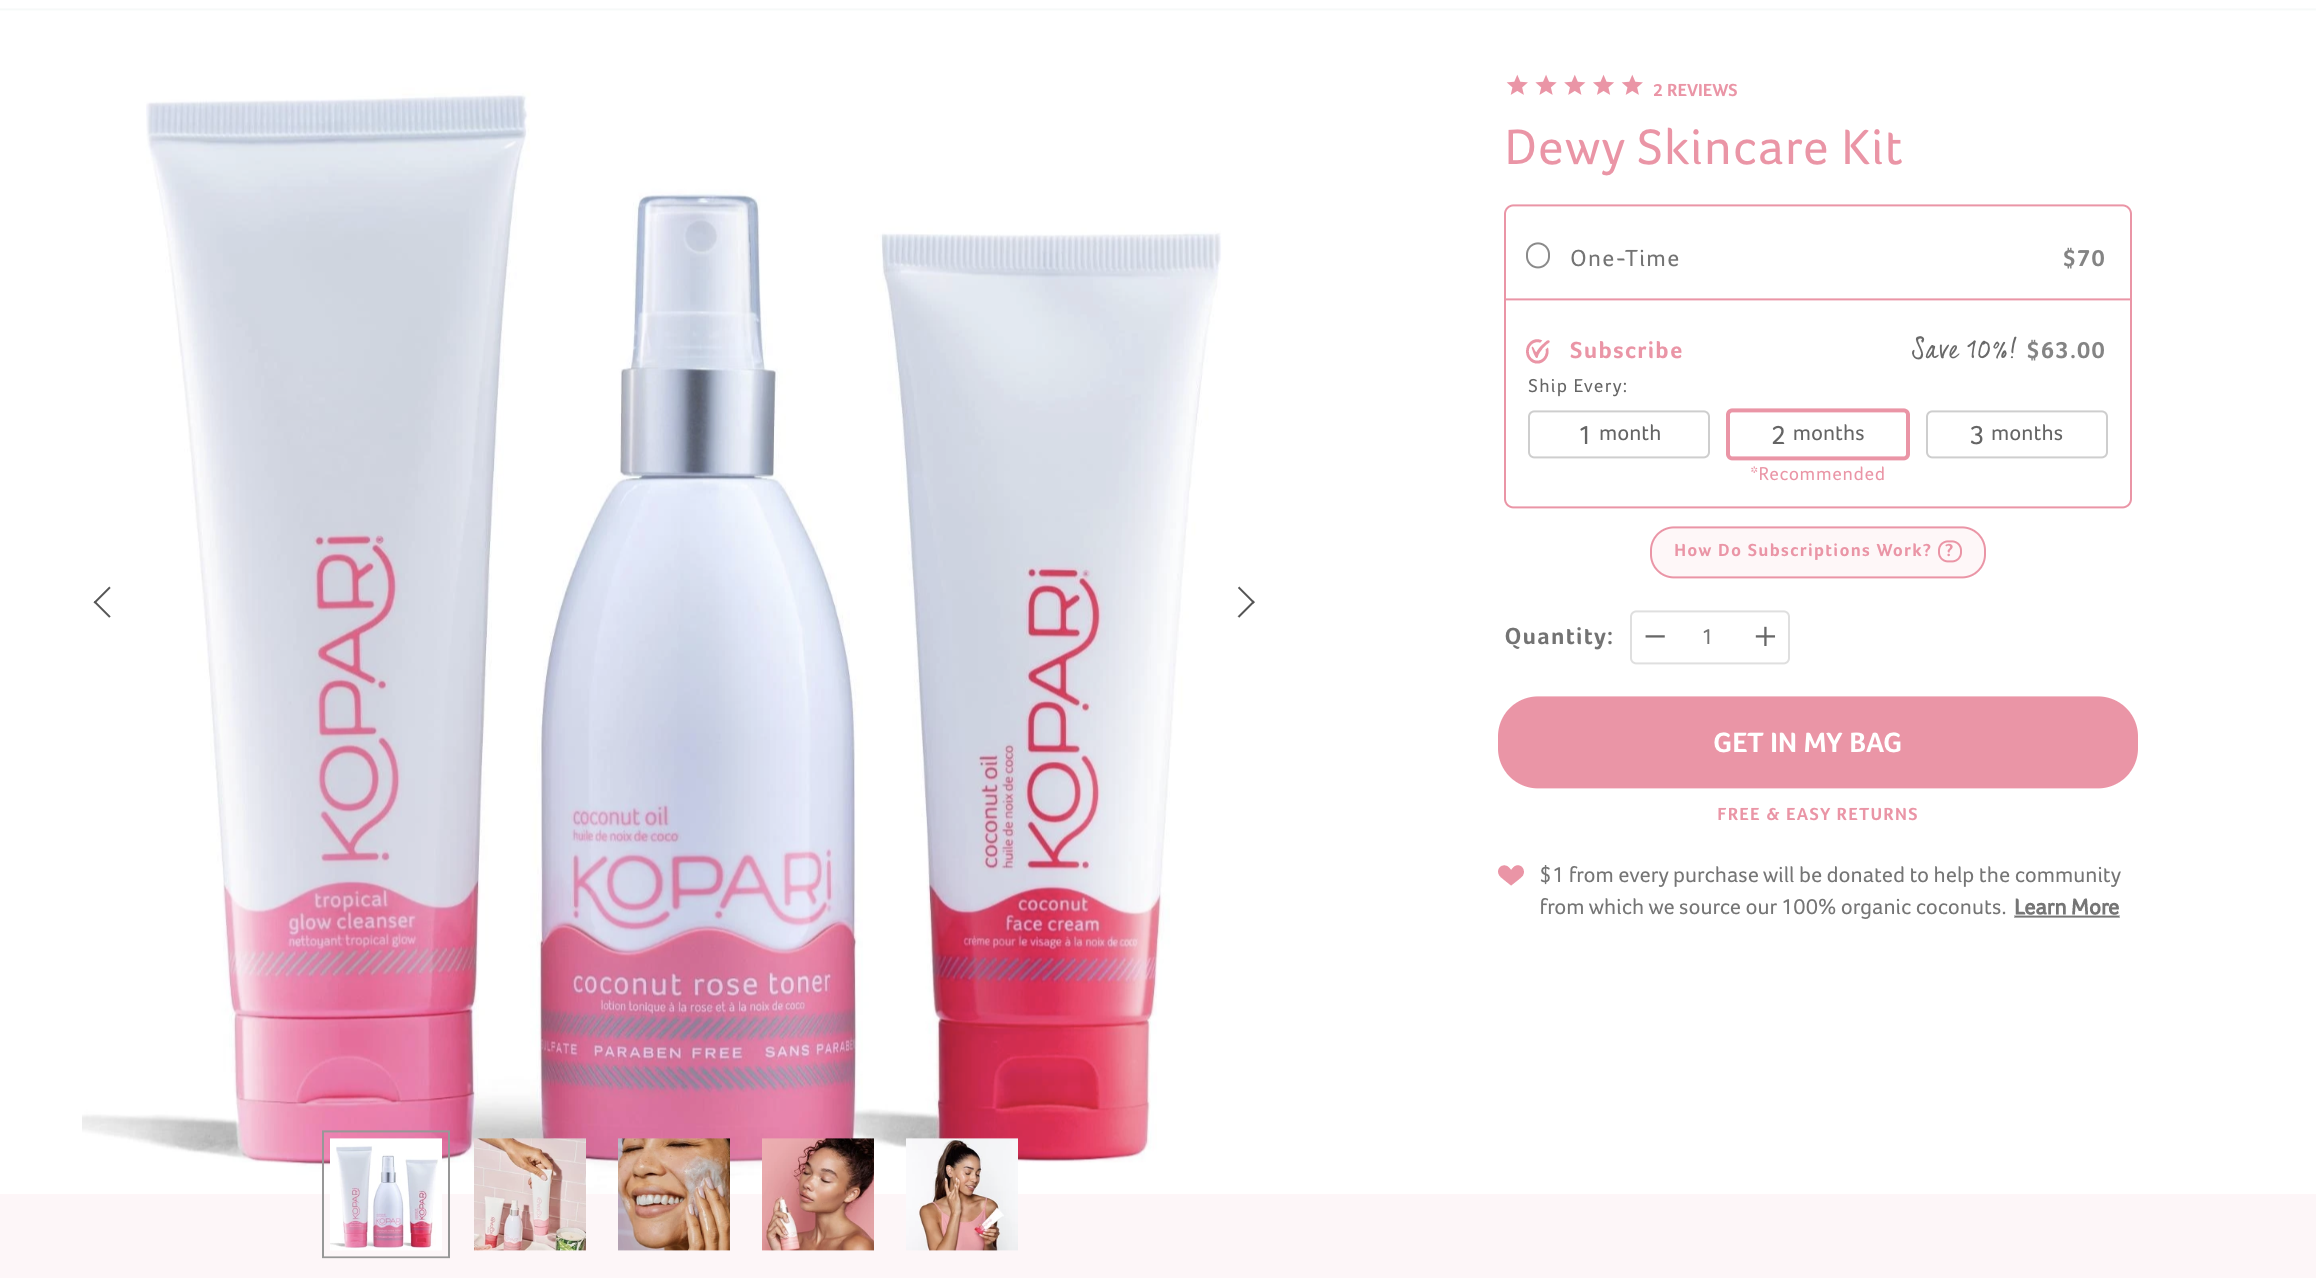 Kopari offers subscribers a 10% discount on products.